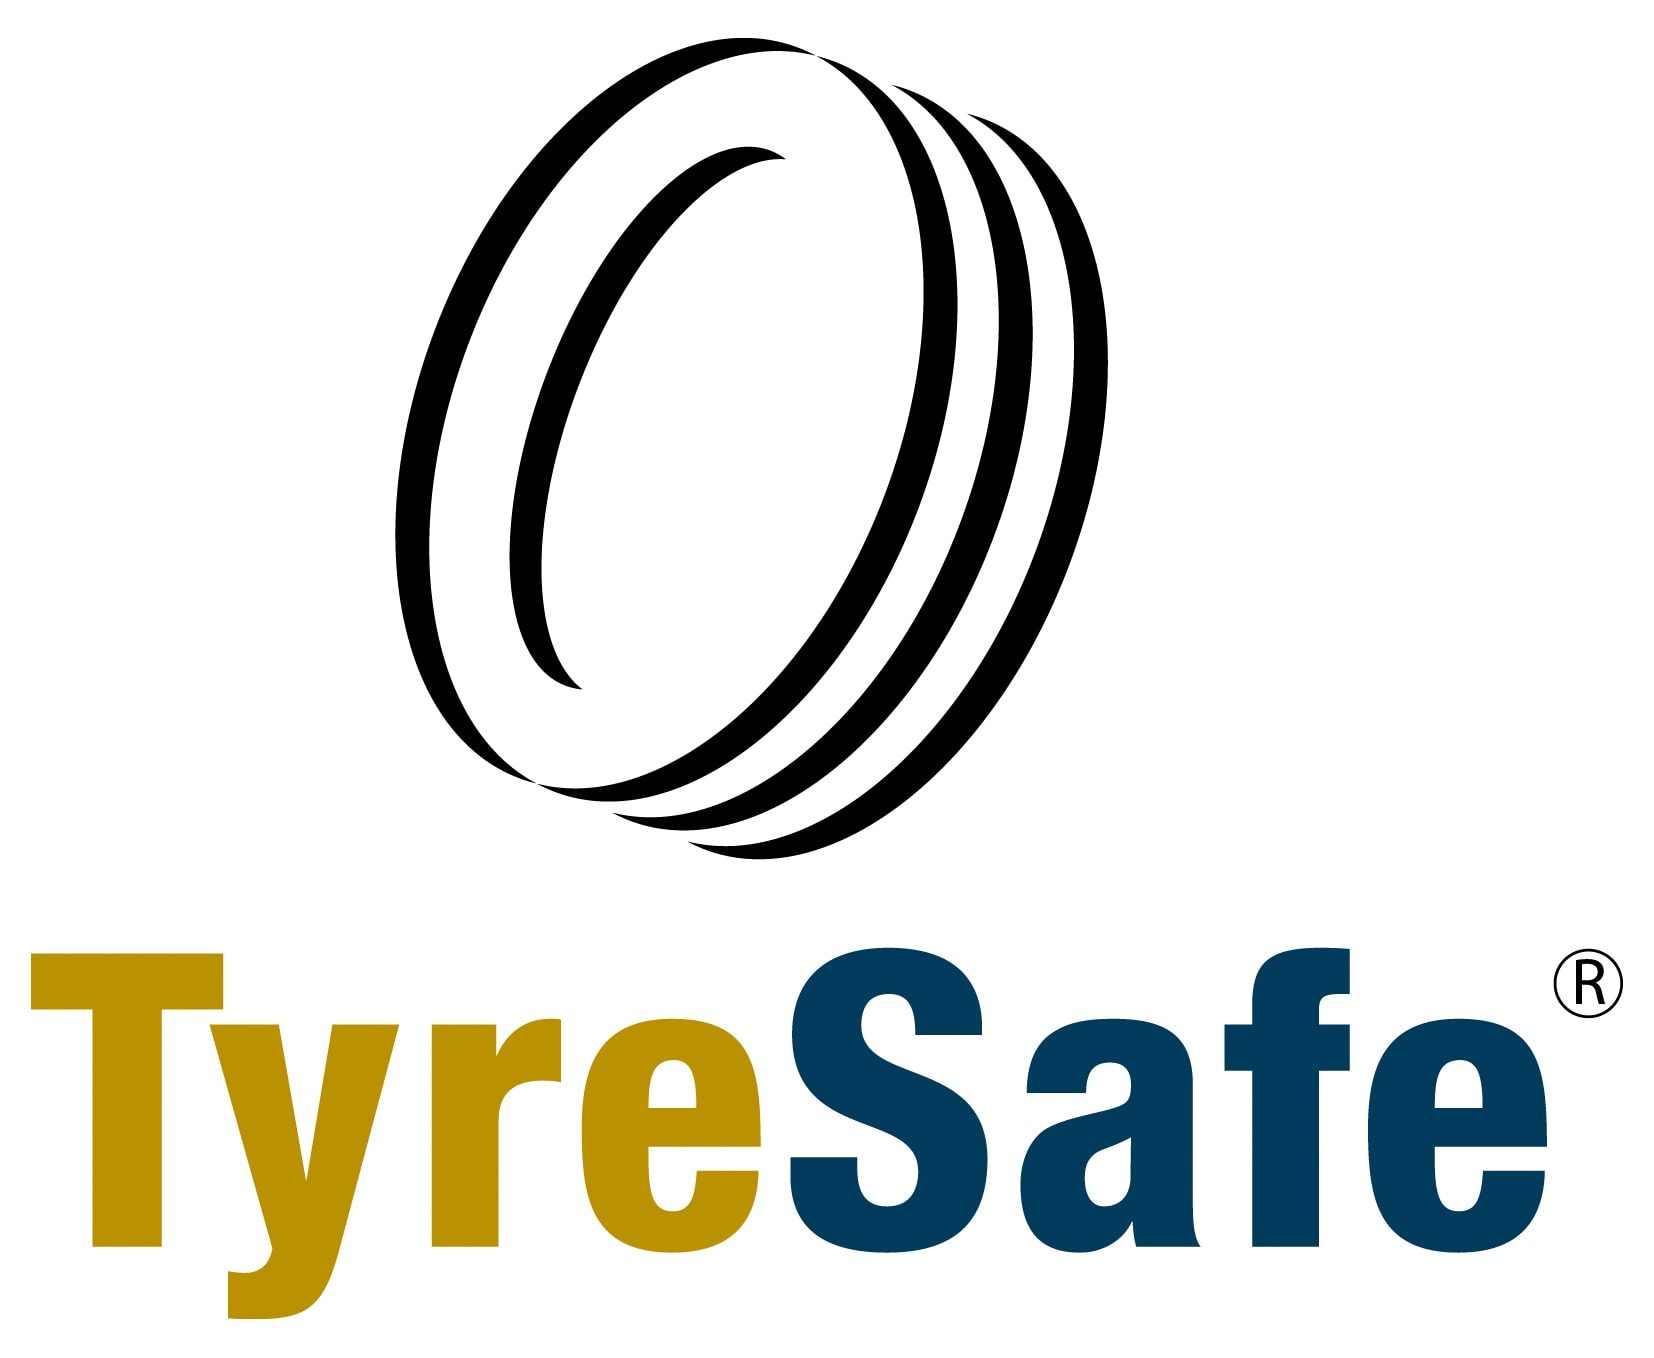 https://www.redmarlin.co.uk/wp-content/uploads/2019/09/TyreSafe-logo-hires.jpg